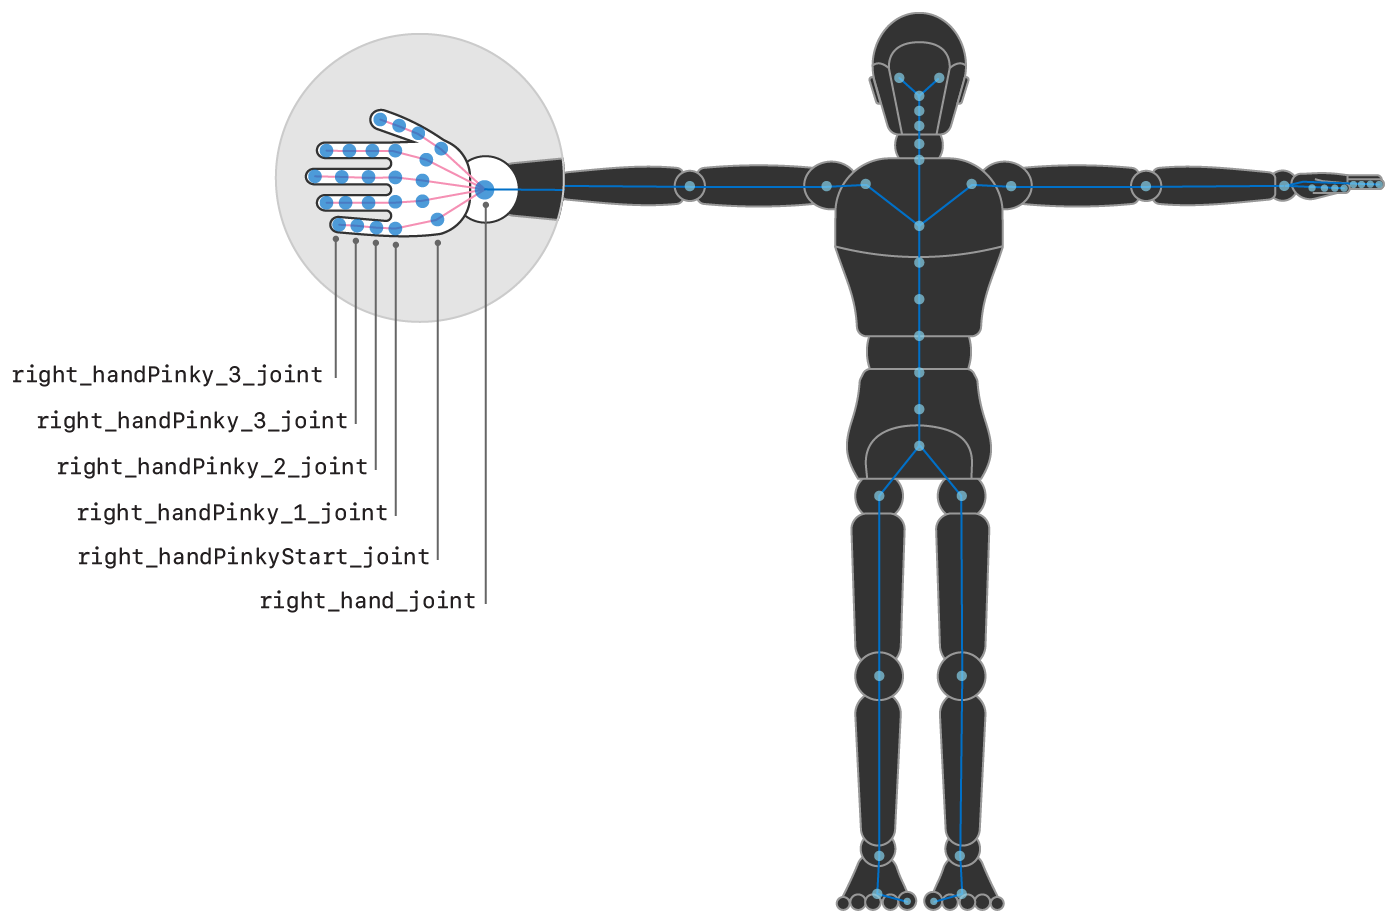 Illustration showing the right hand of the humanoid figure highlighted, with some of the joints named.